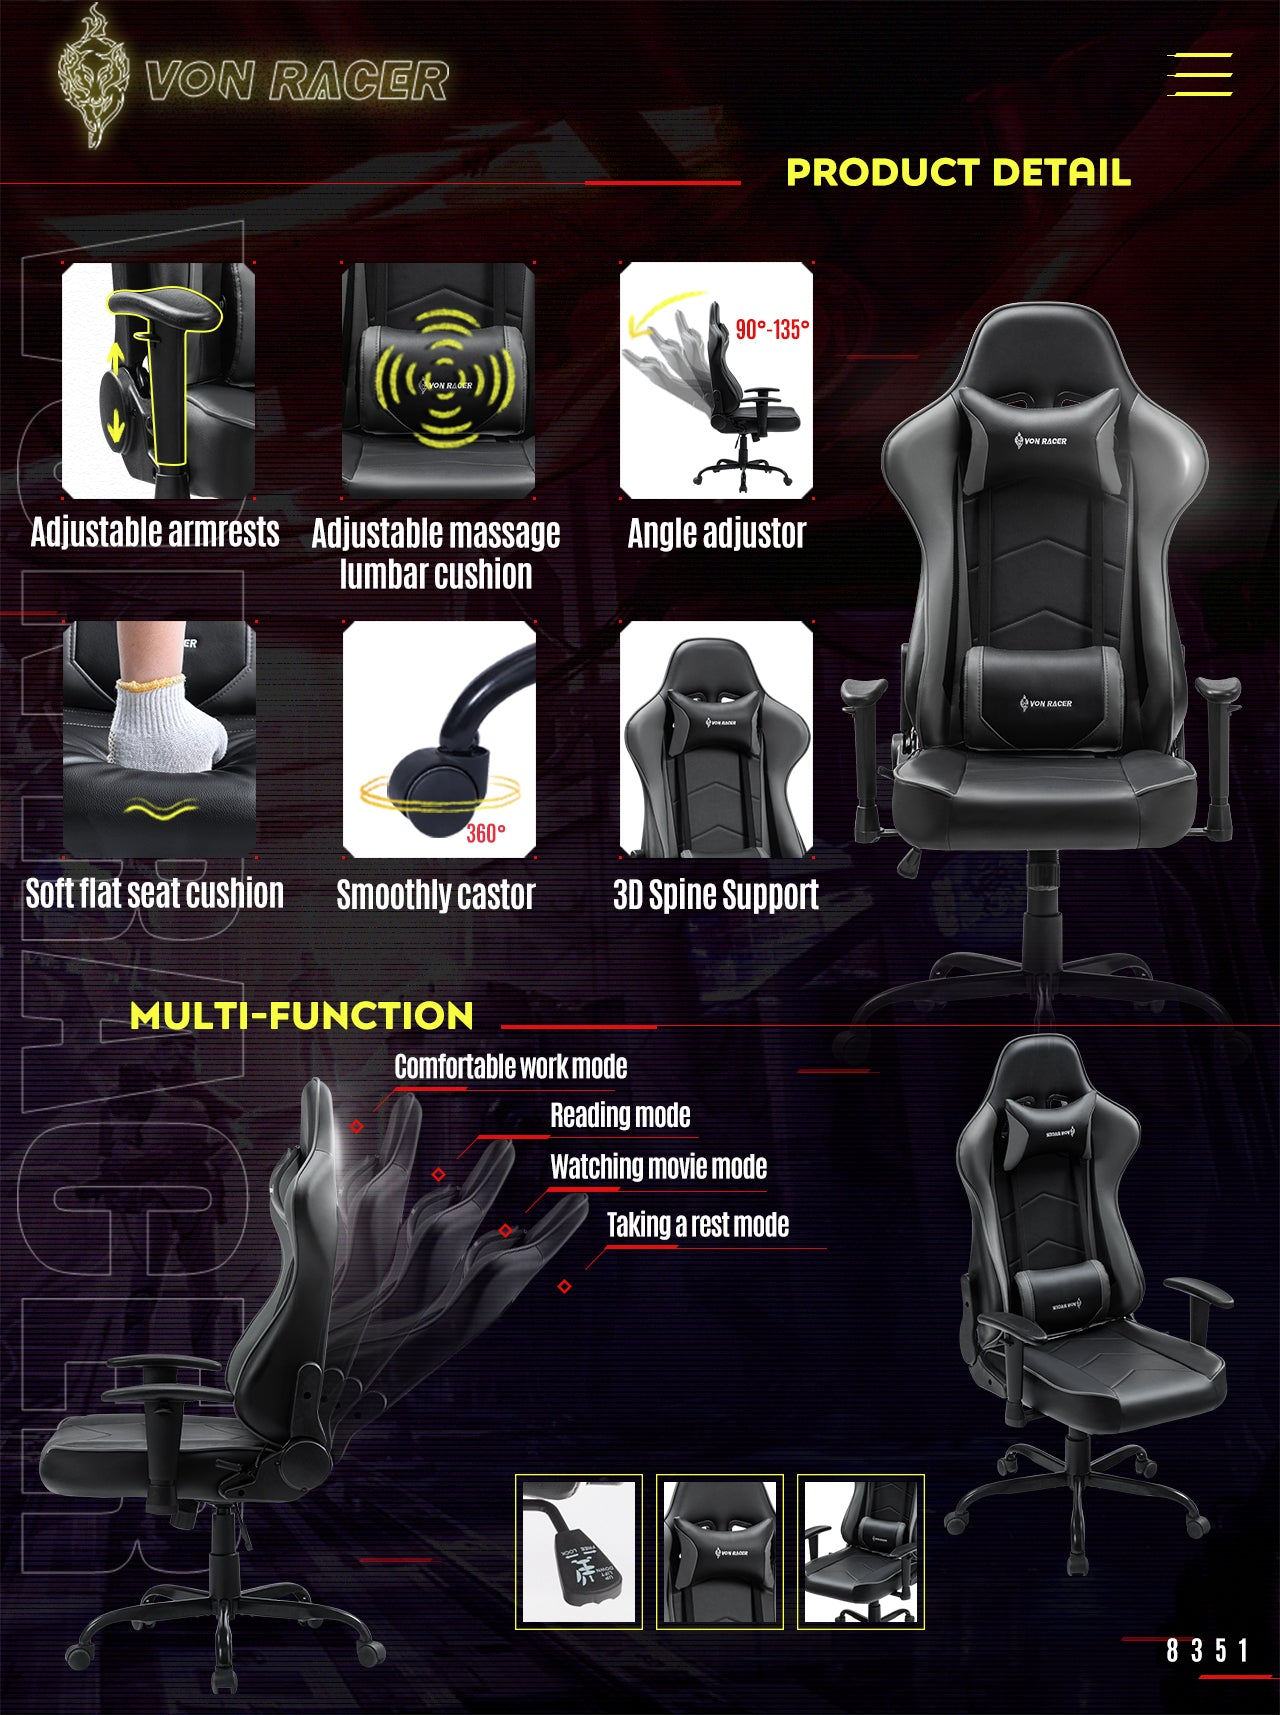 VON RACER Gaming Chair ADDAX Series Ergonomic gray gaming desk chair features